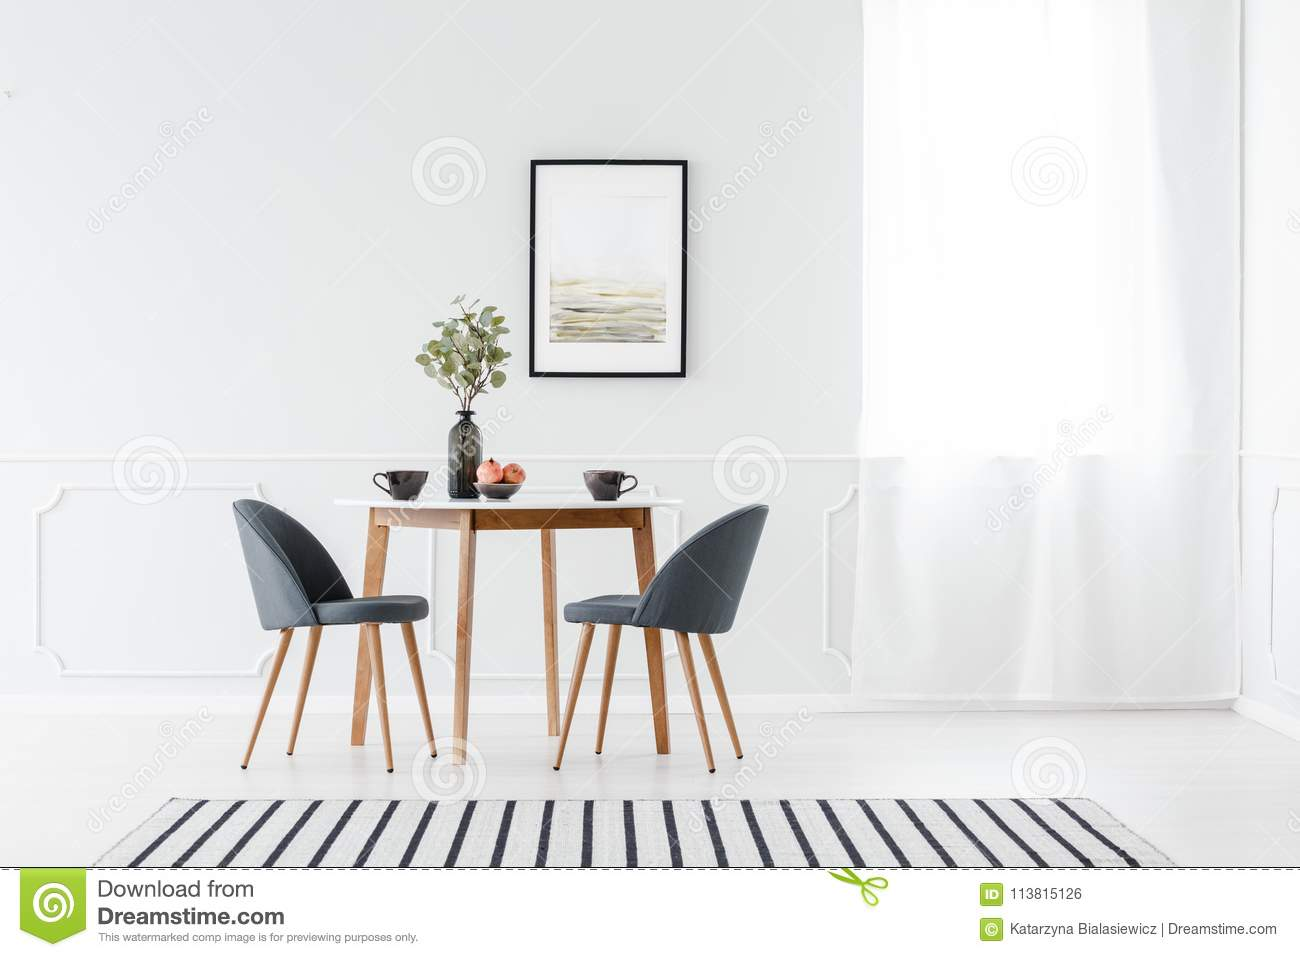 Minimalist Furniture Dining Furniture In Minimalist Interior Stock Photo Image Of